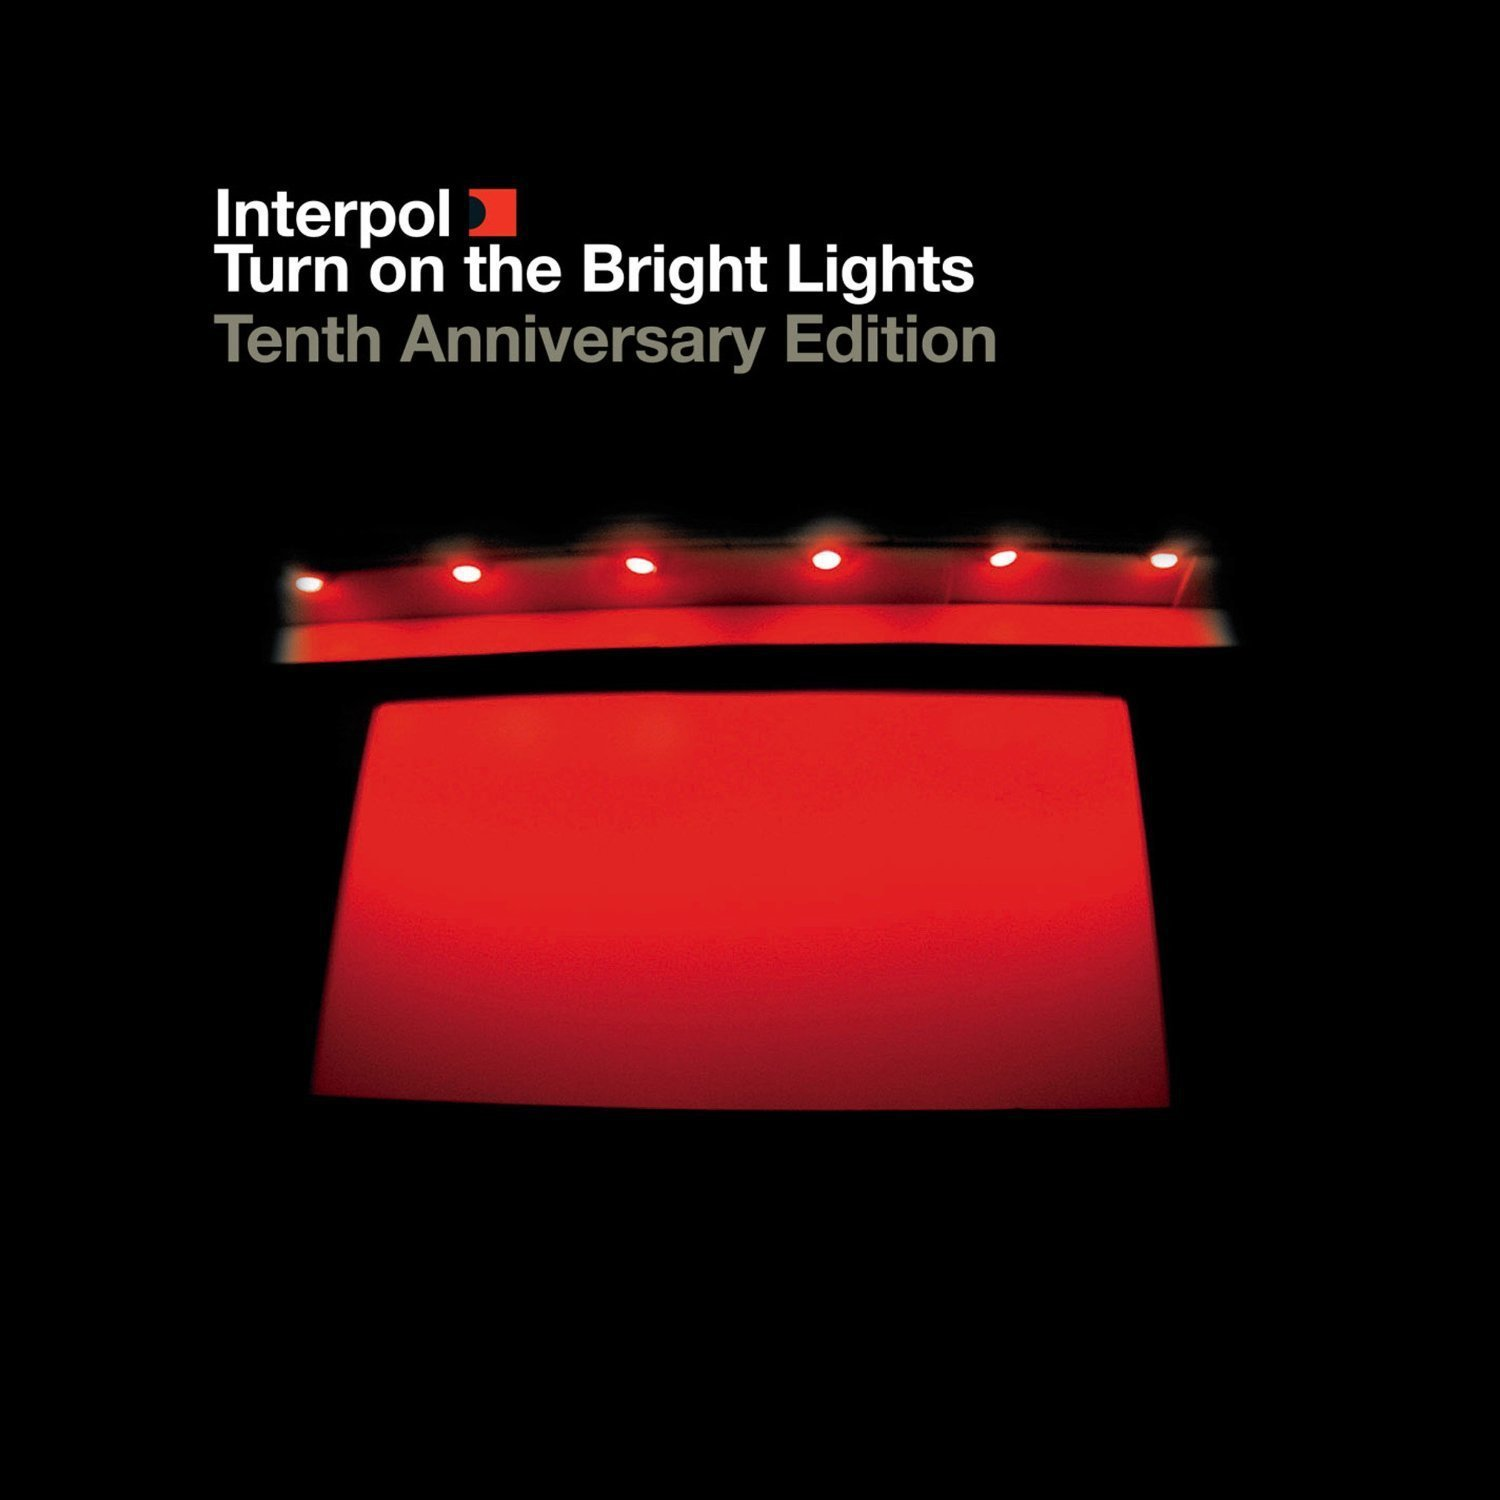 Interpol, Turn on the Bright Lights: Tenth Anniversary Edition